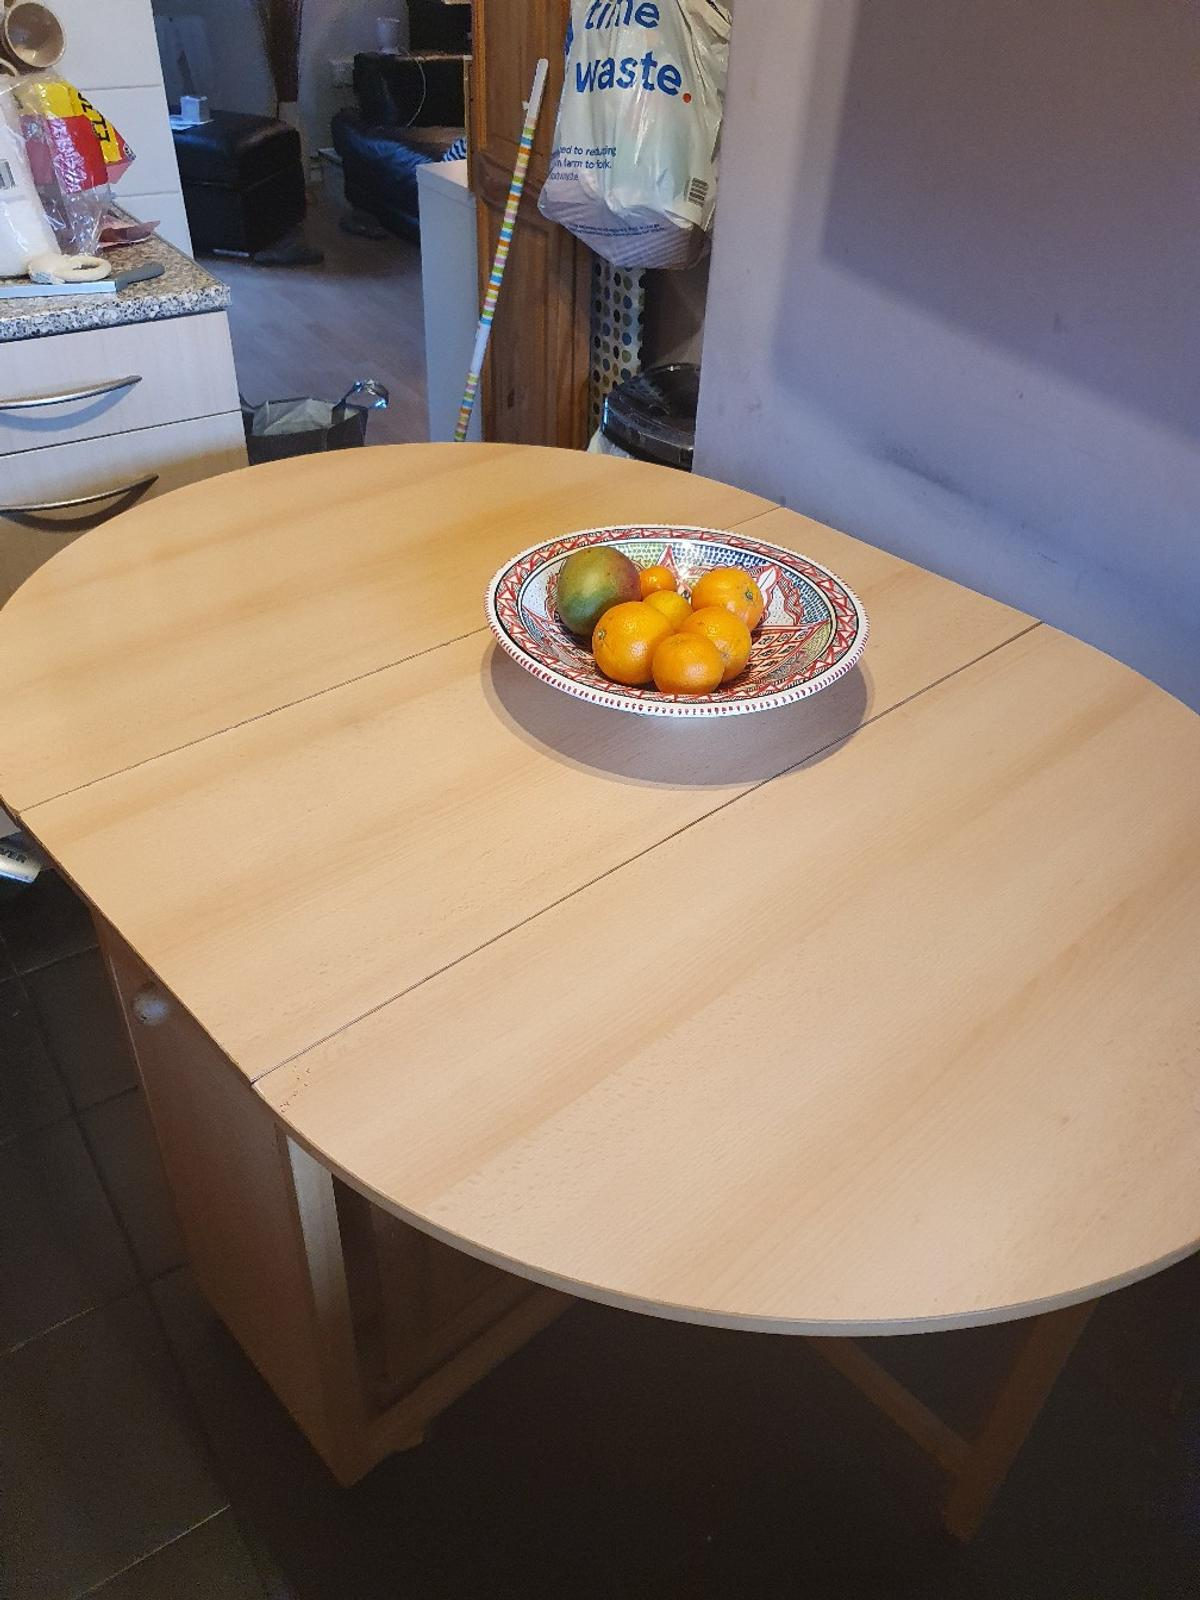 Used Beachwood Table. Have had for number of years so there are signs of wear. Moving to Smaller place so need to sell.  Collection only.